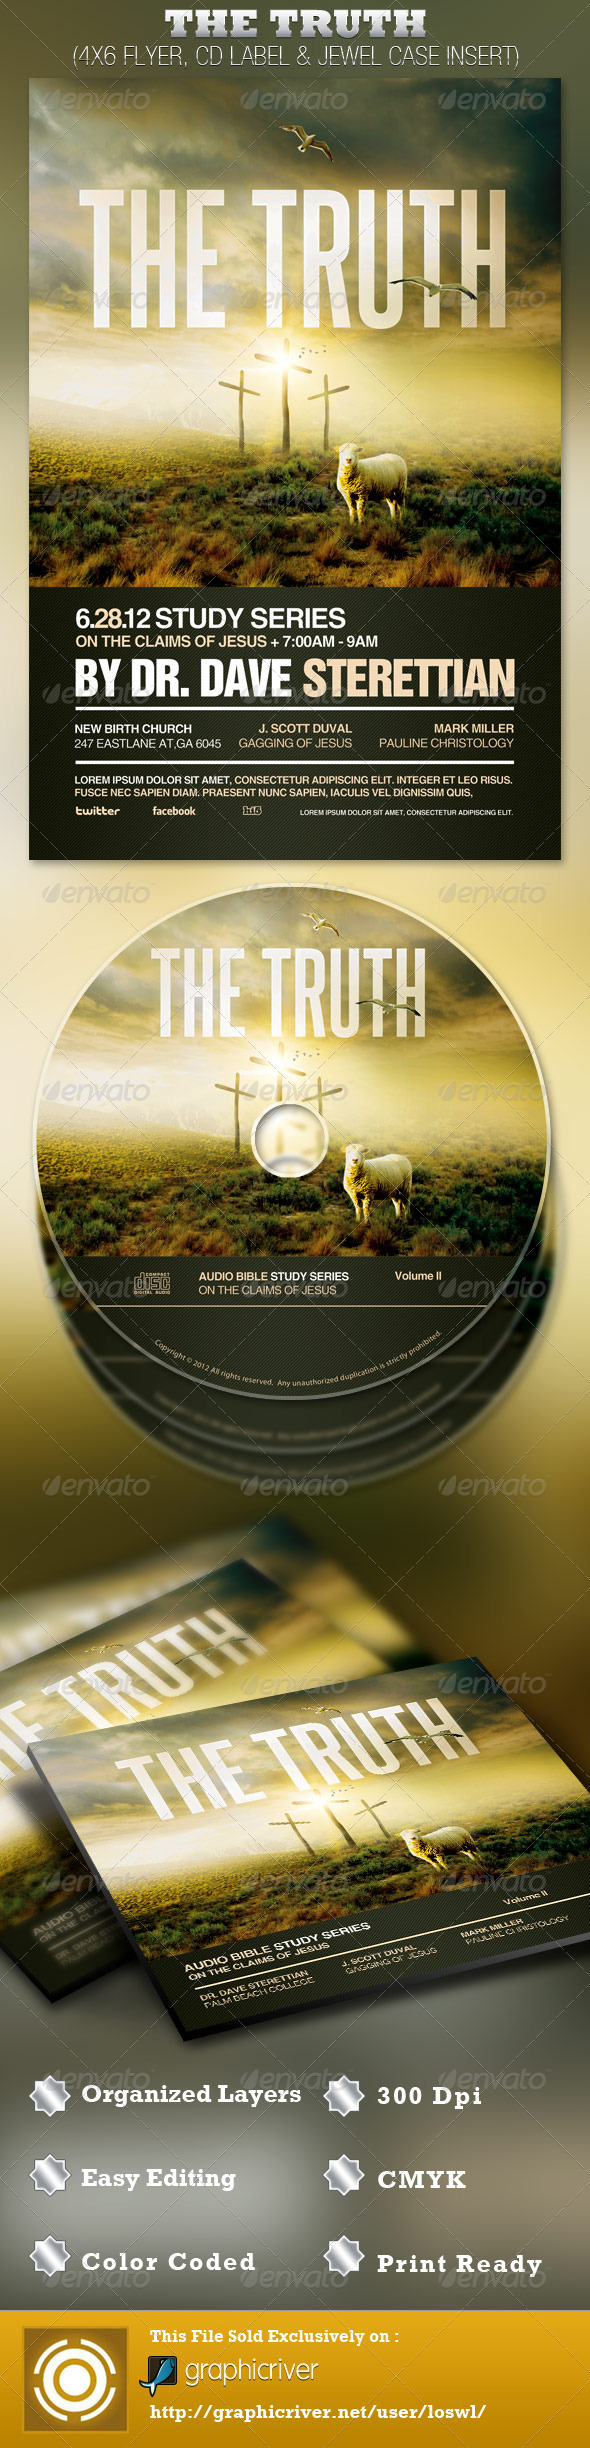 The Truth Church Flyer and CD Template - Church Flyers